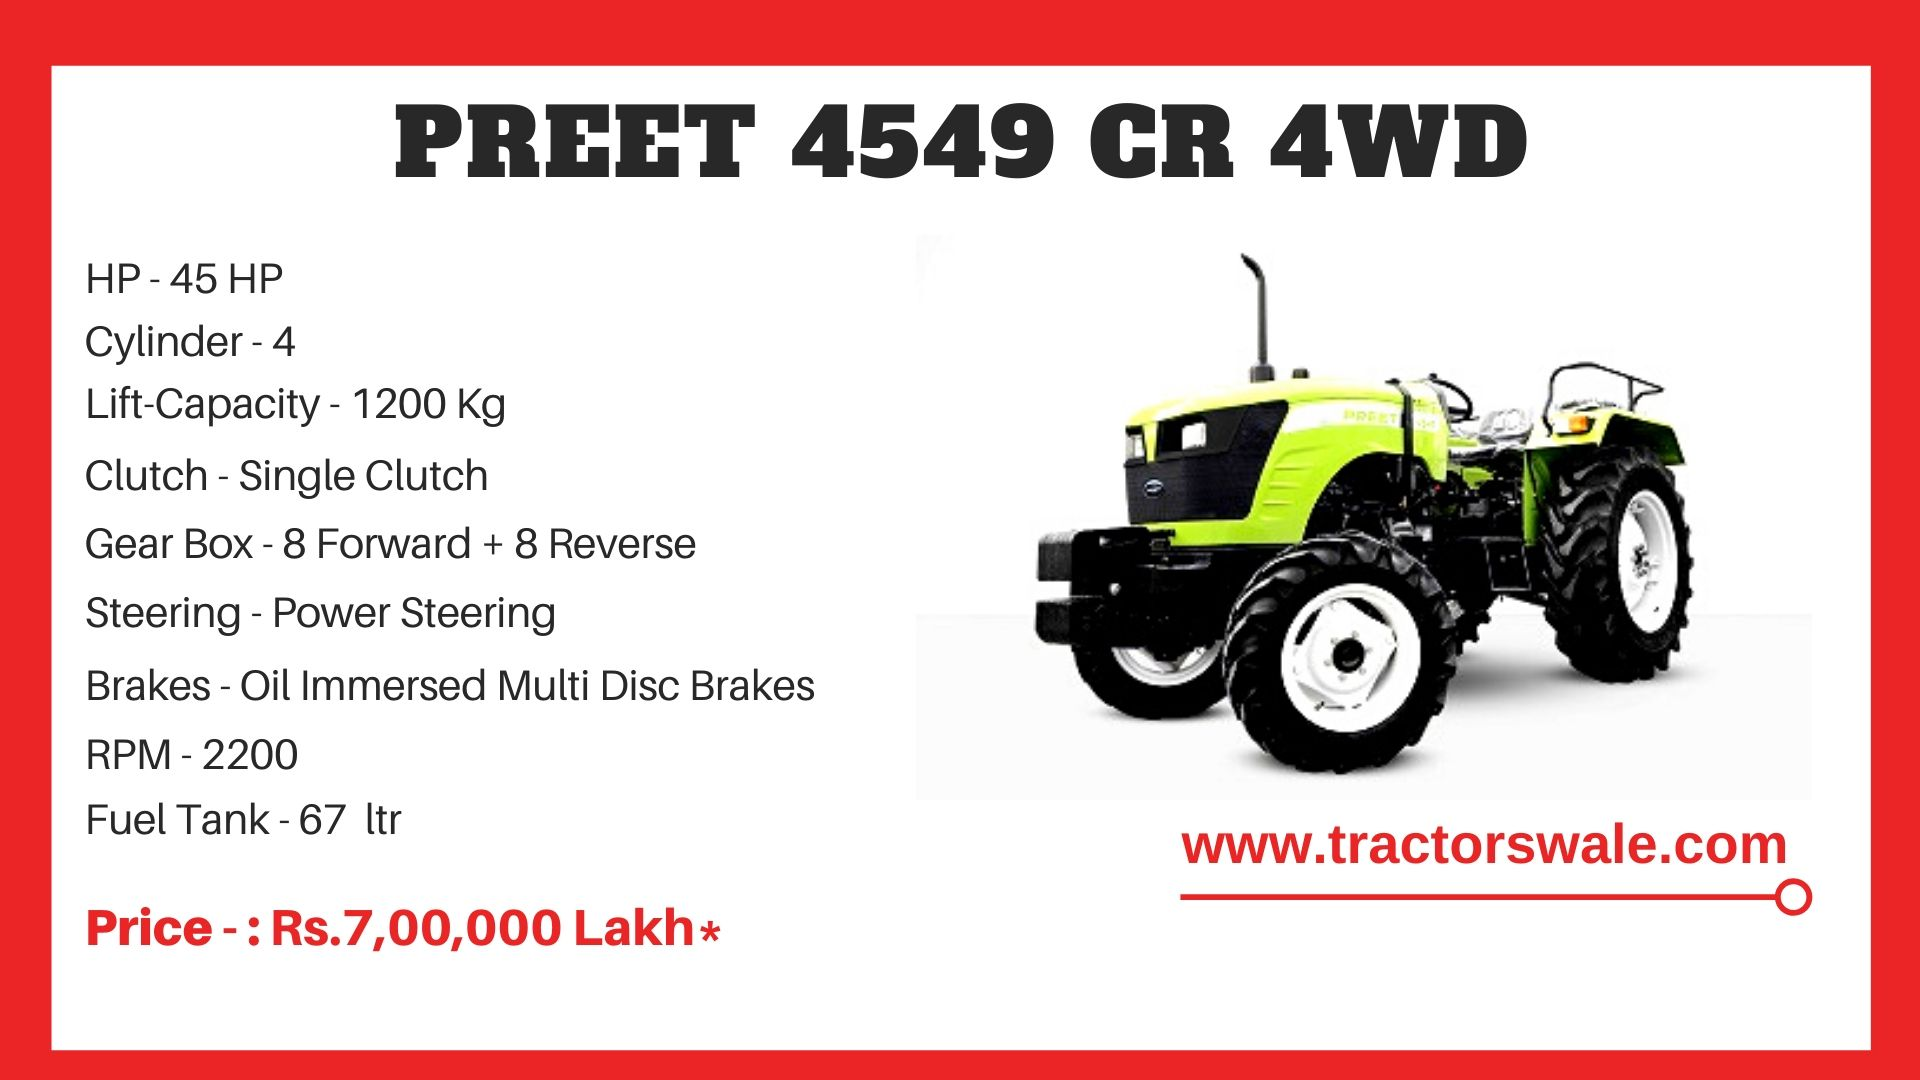 Preet 4549 CR 4WD tractor price